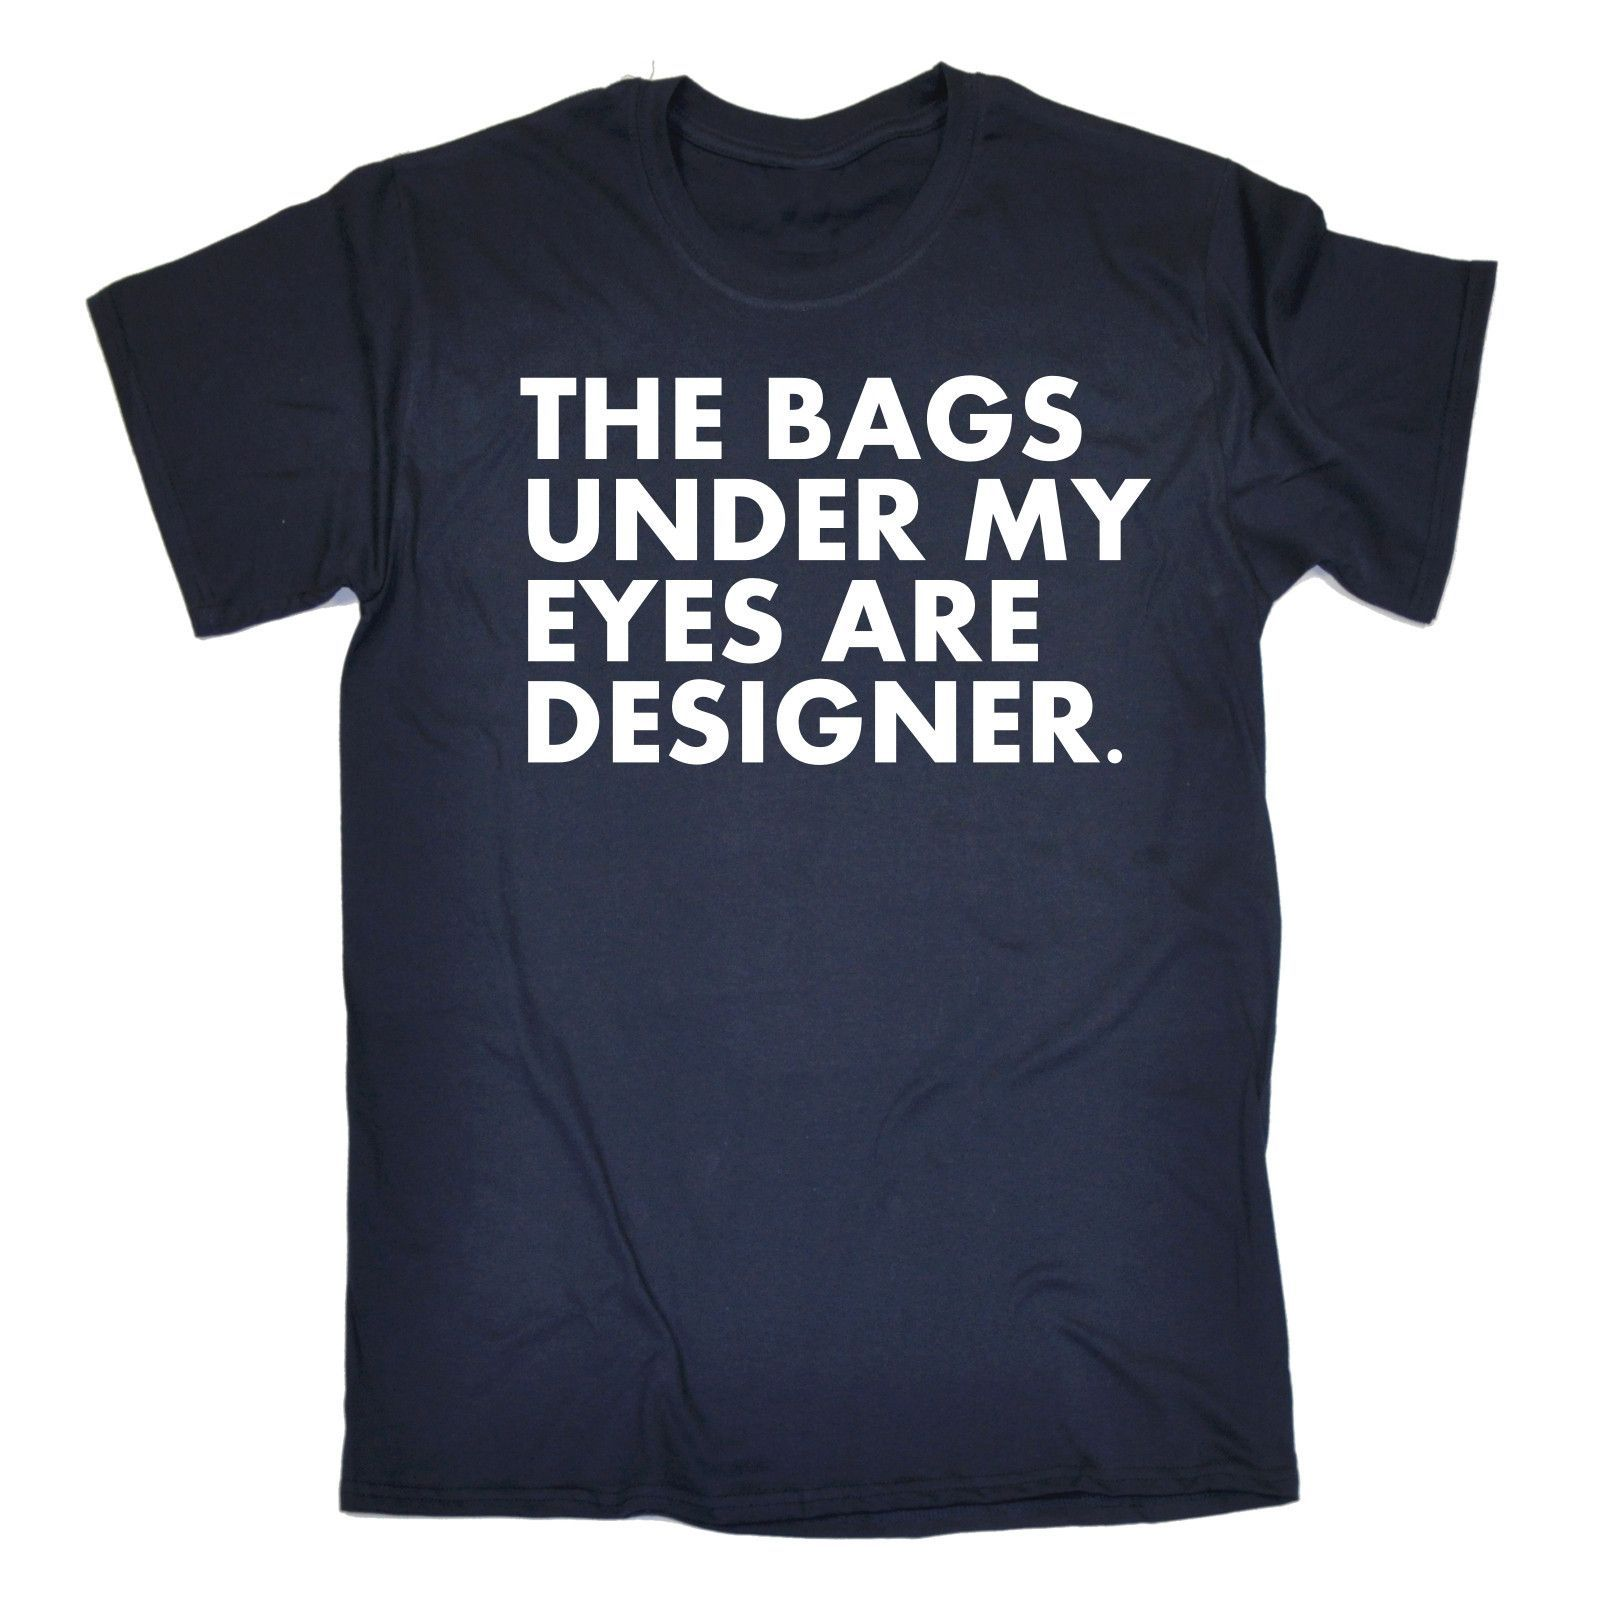 123t USA Men's The Bags Under My Eyes Are Designer Funny T-Shirt